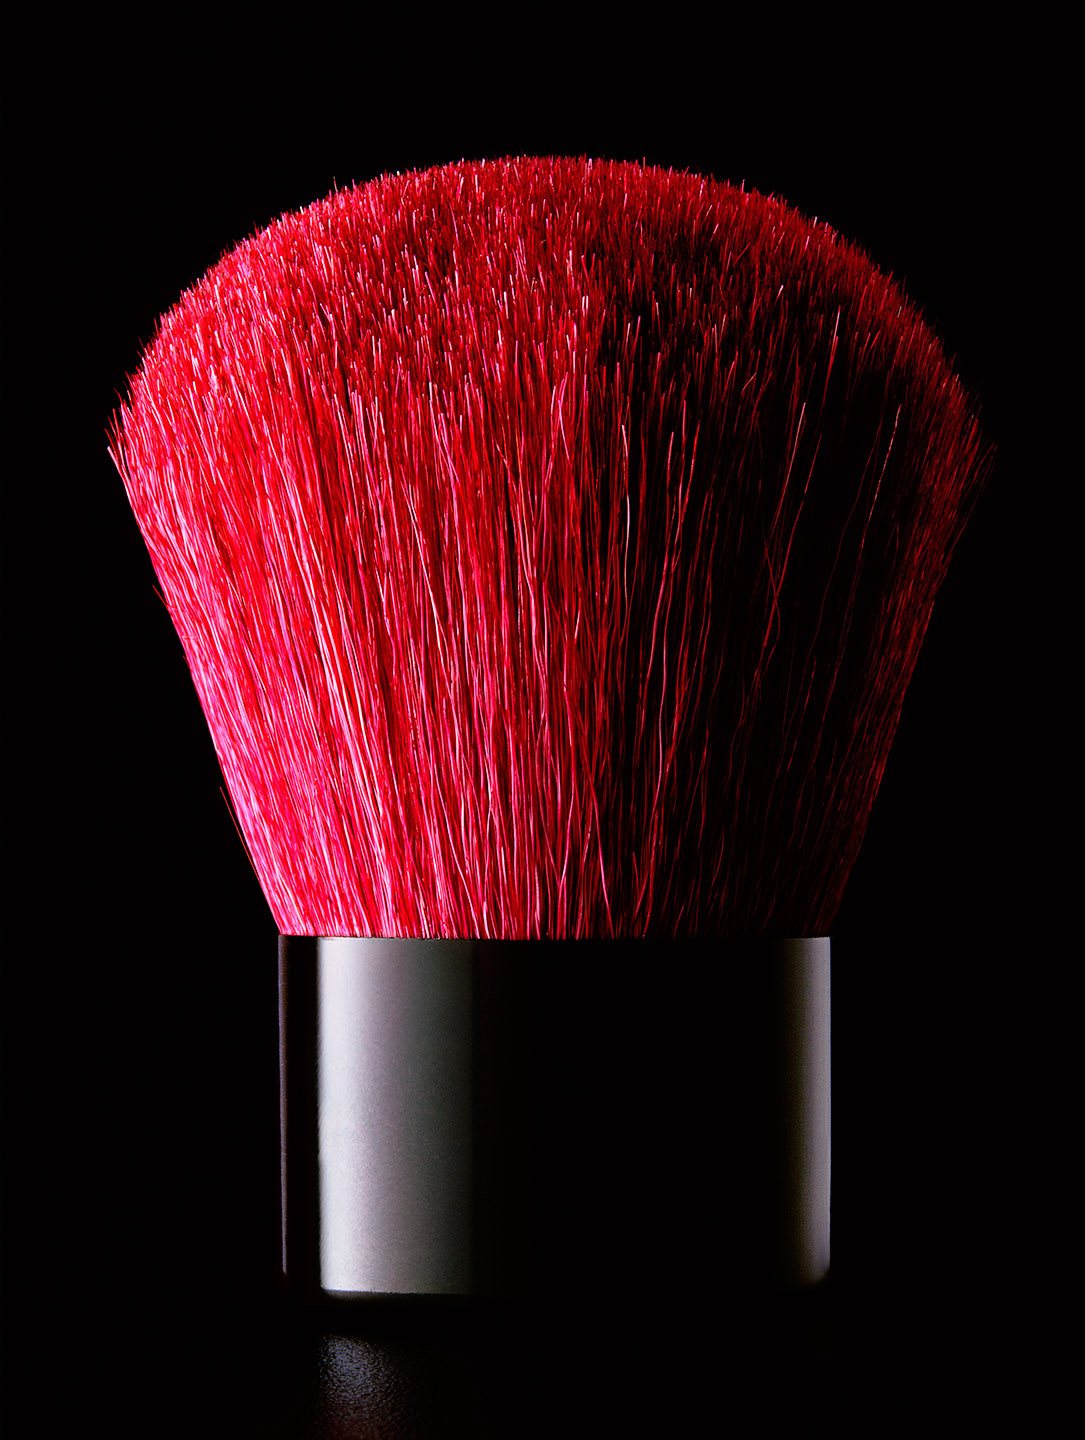 Tal_Red_Brush